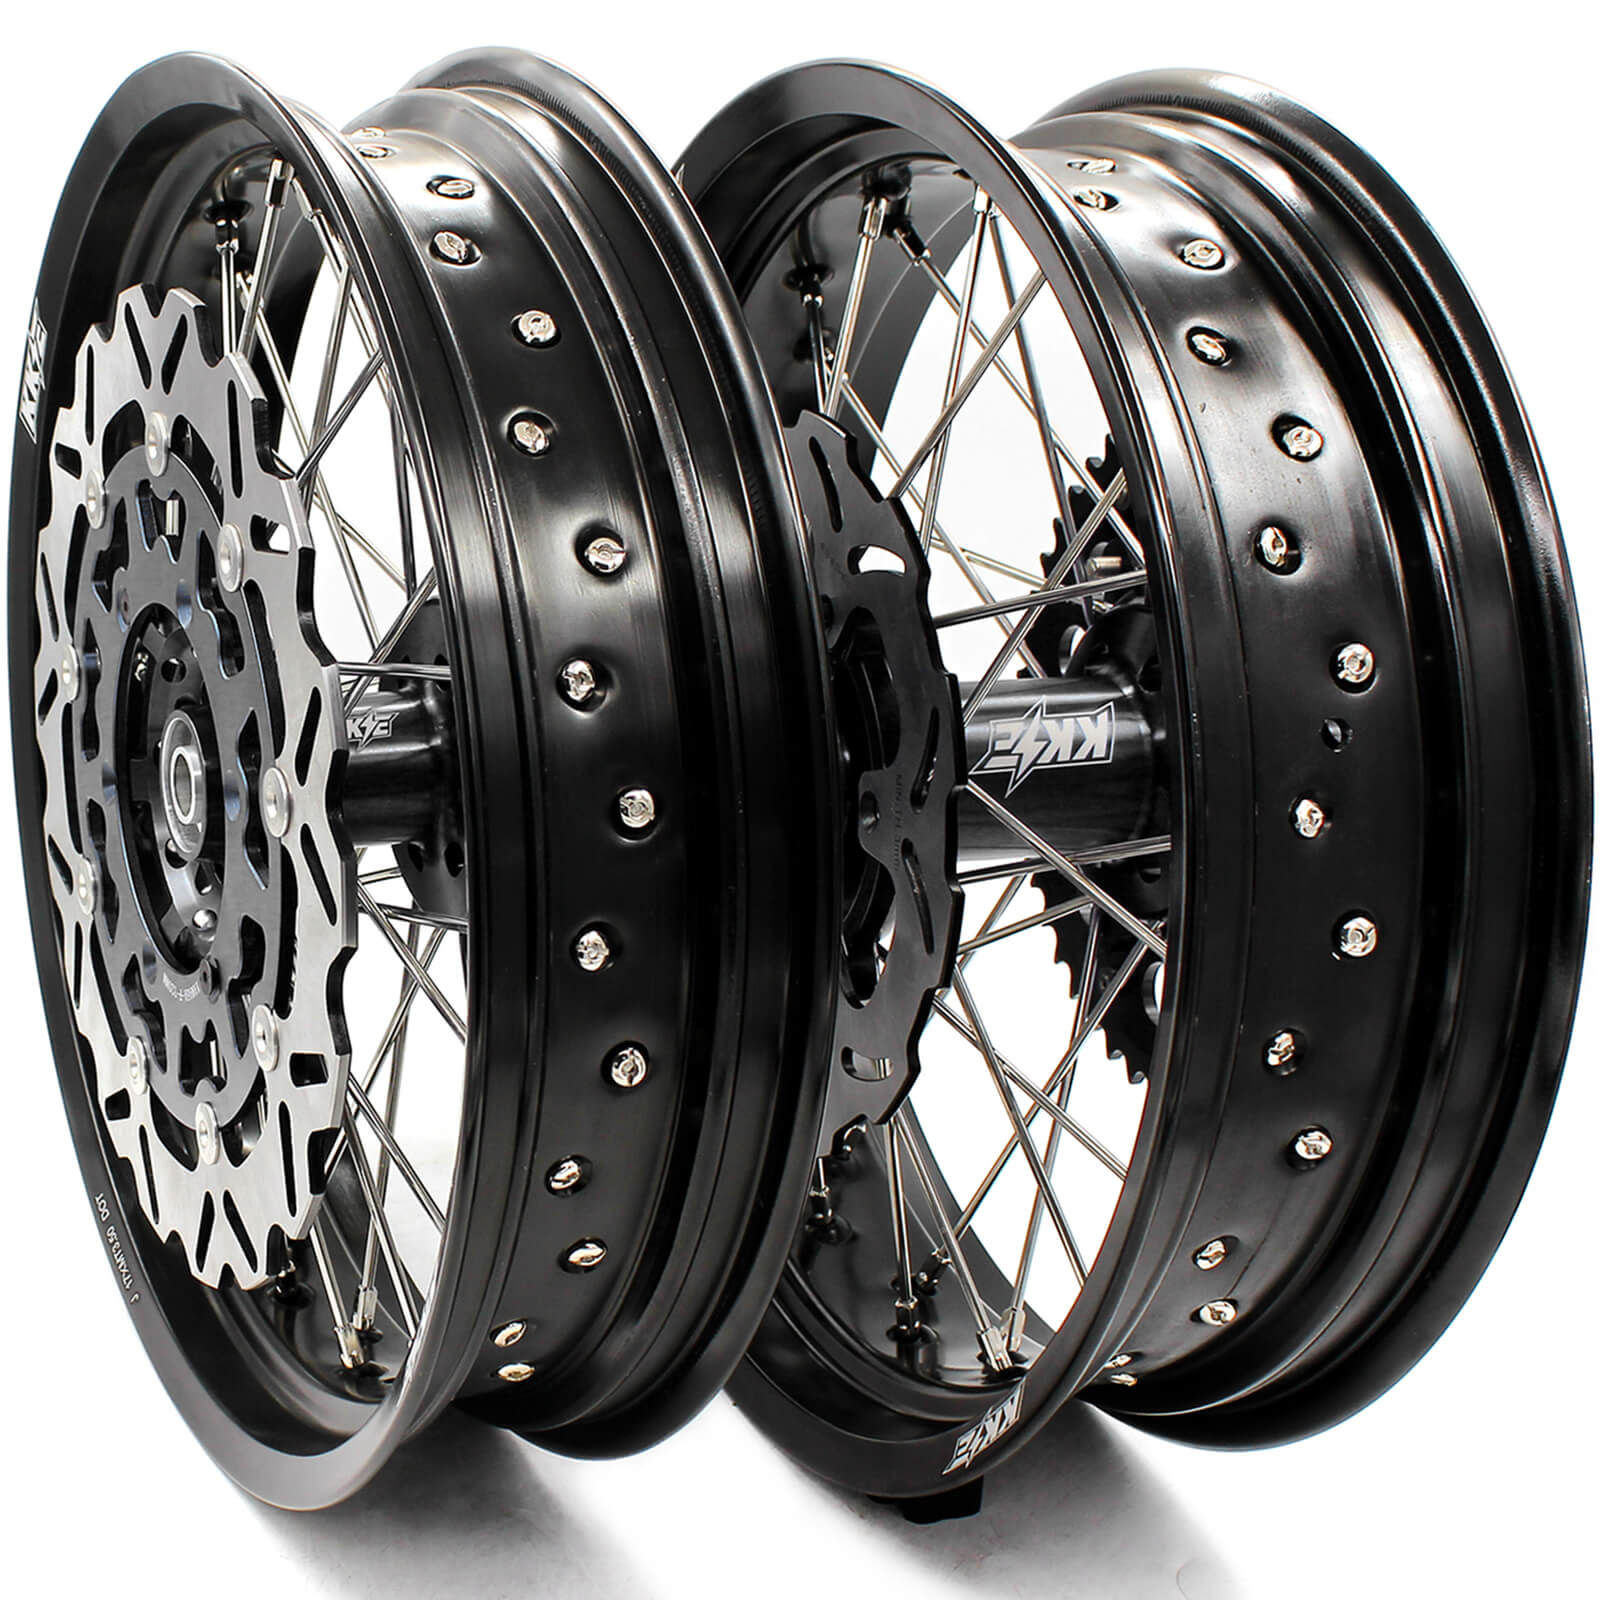 3.5/4.25 WHEELS SET FOR SUZUKI DRZ400 DRZ400E DRZ400S FRONT BLACK 320MM DISC - KKE Racing